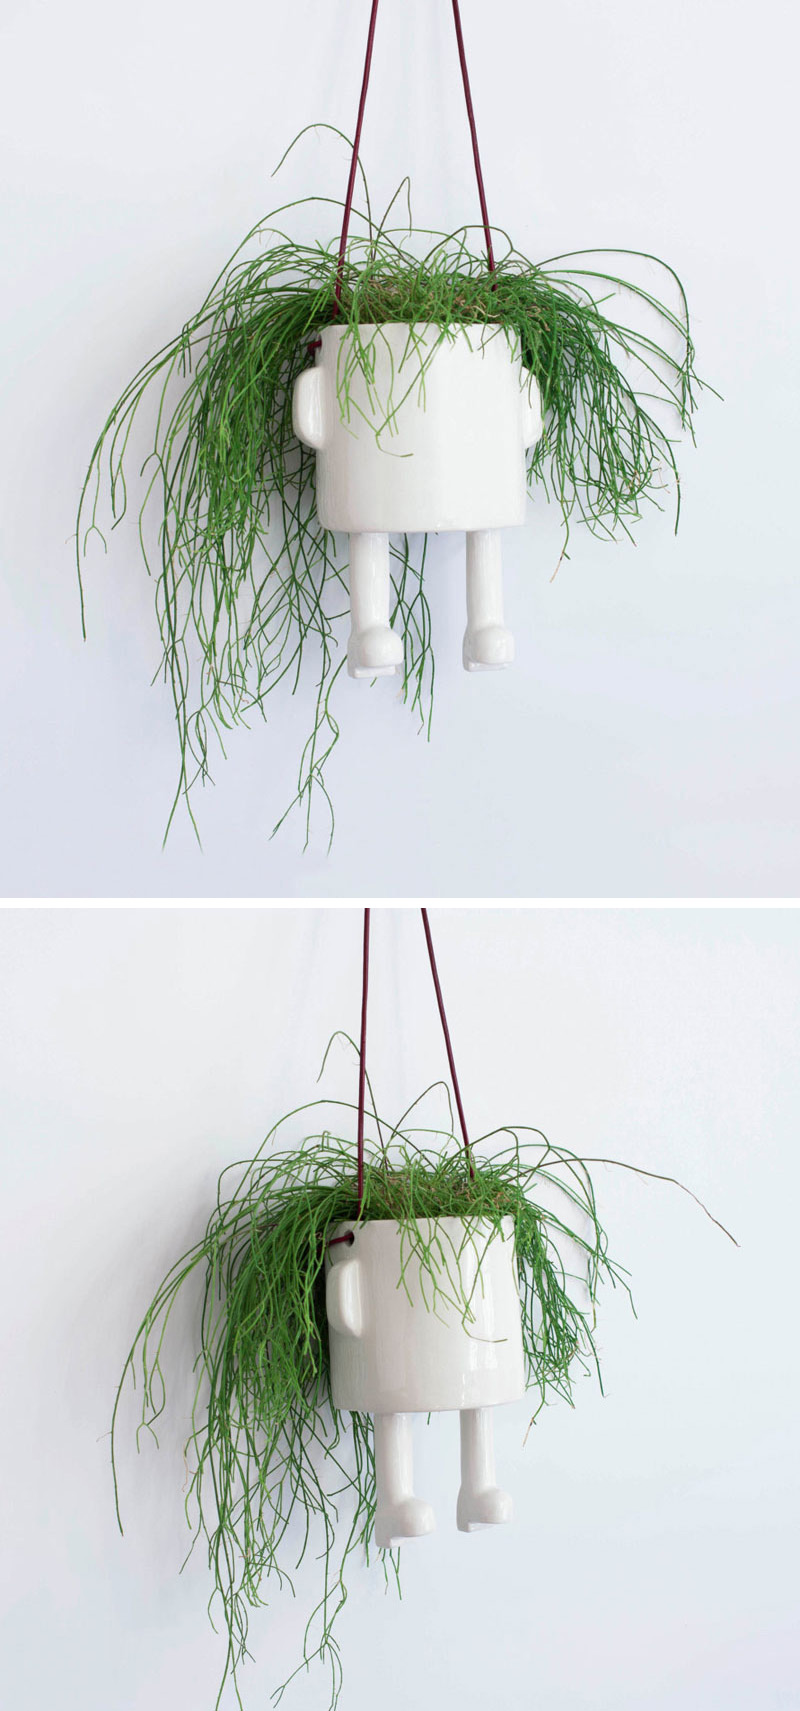 Fun and whimsical this person shaped white ceramic hanging planter is the ultimate home for a small plant and lets you choose the hairstyle for your